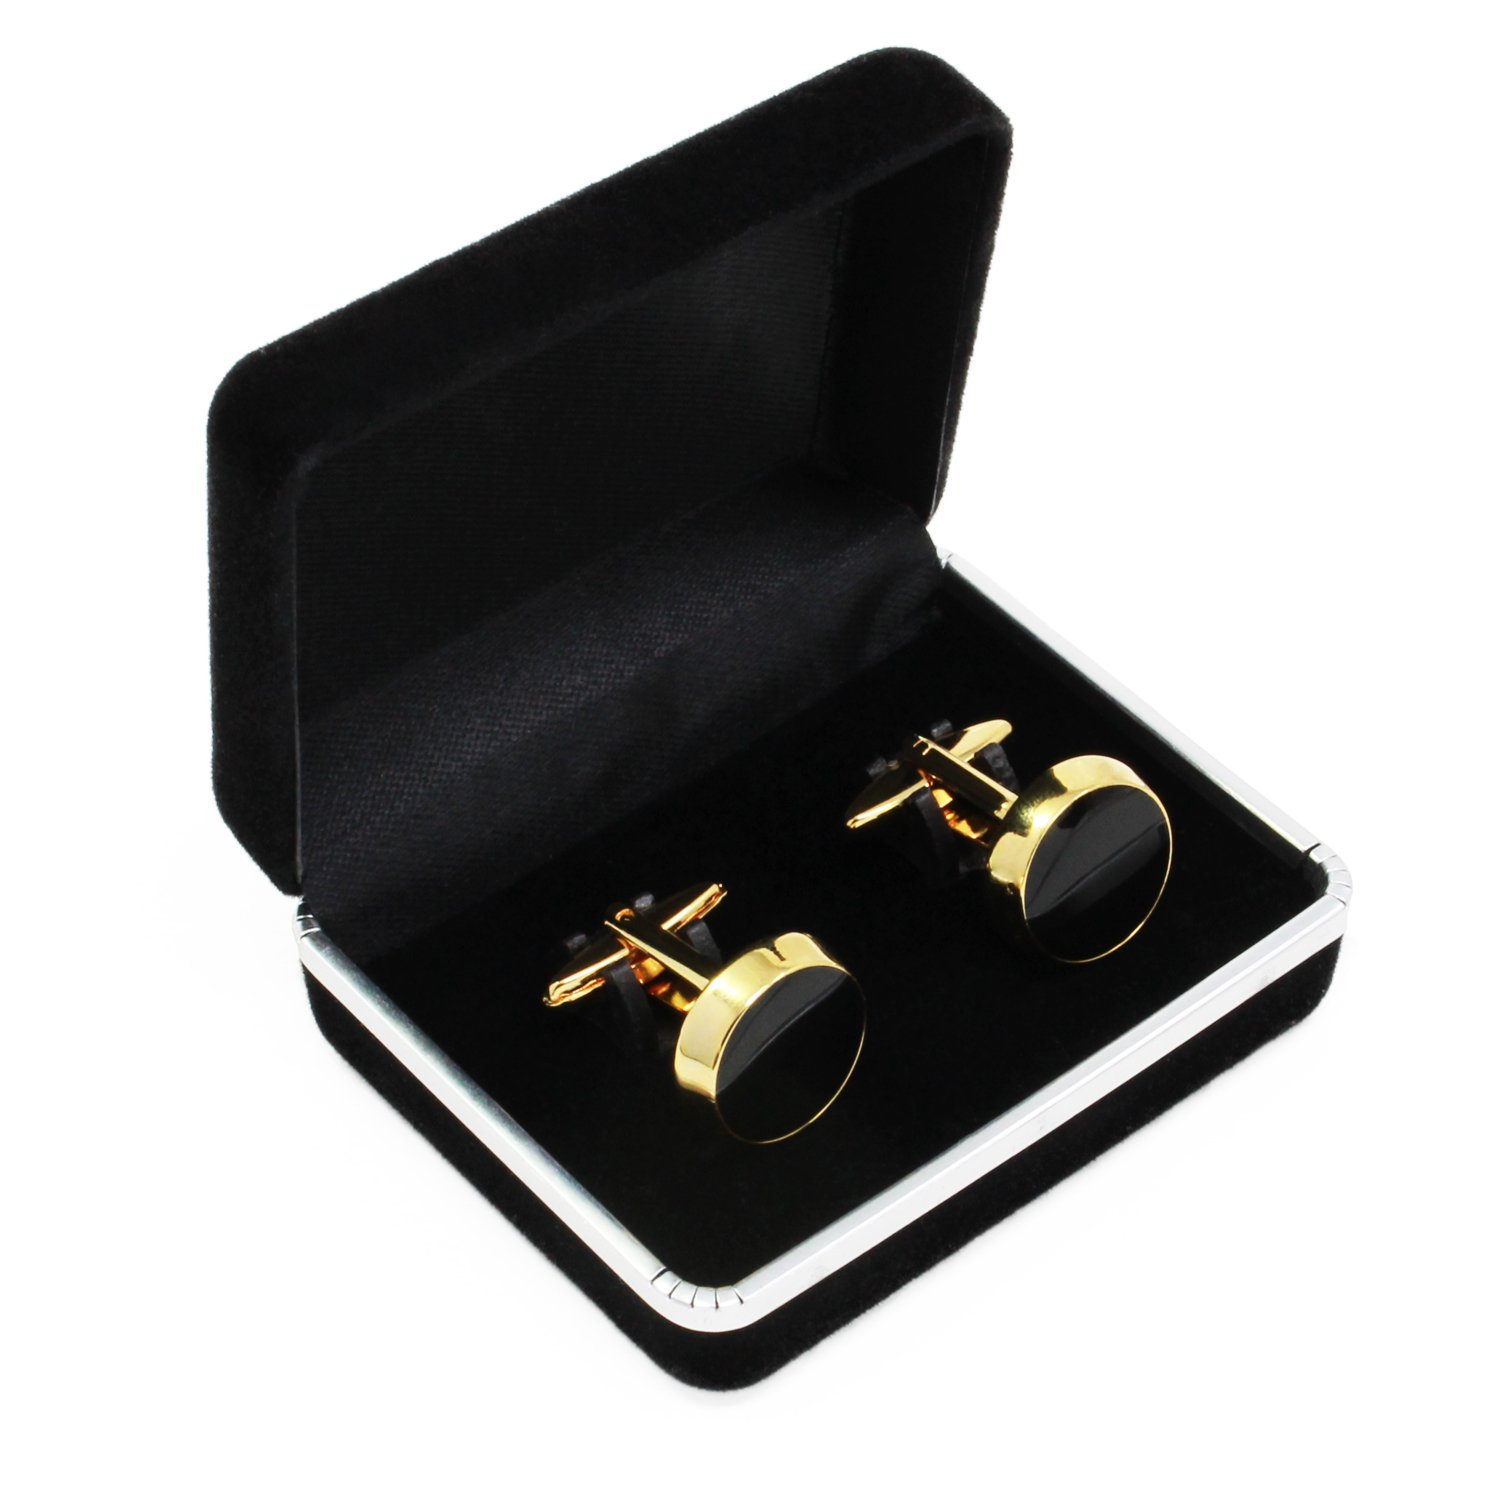 KEESIN Vintage Round Cufflinks Elegant Mens Shirts Cuff links for Business Wedding Party